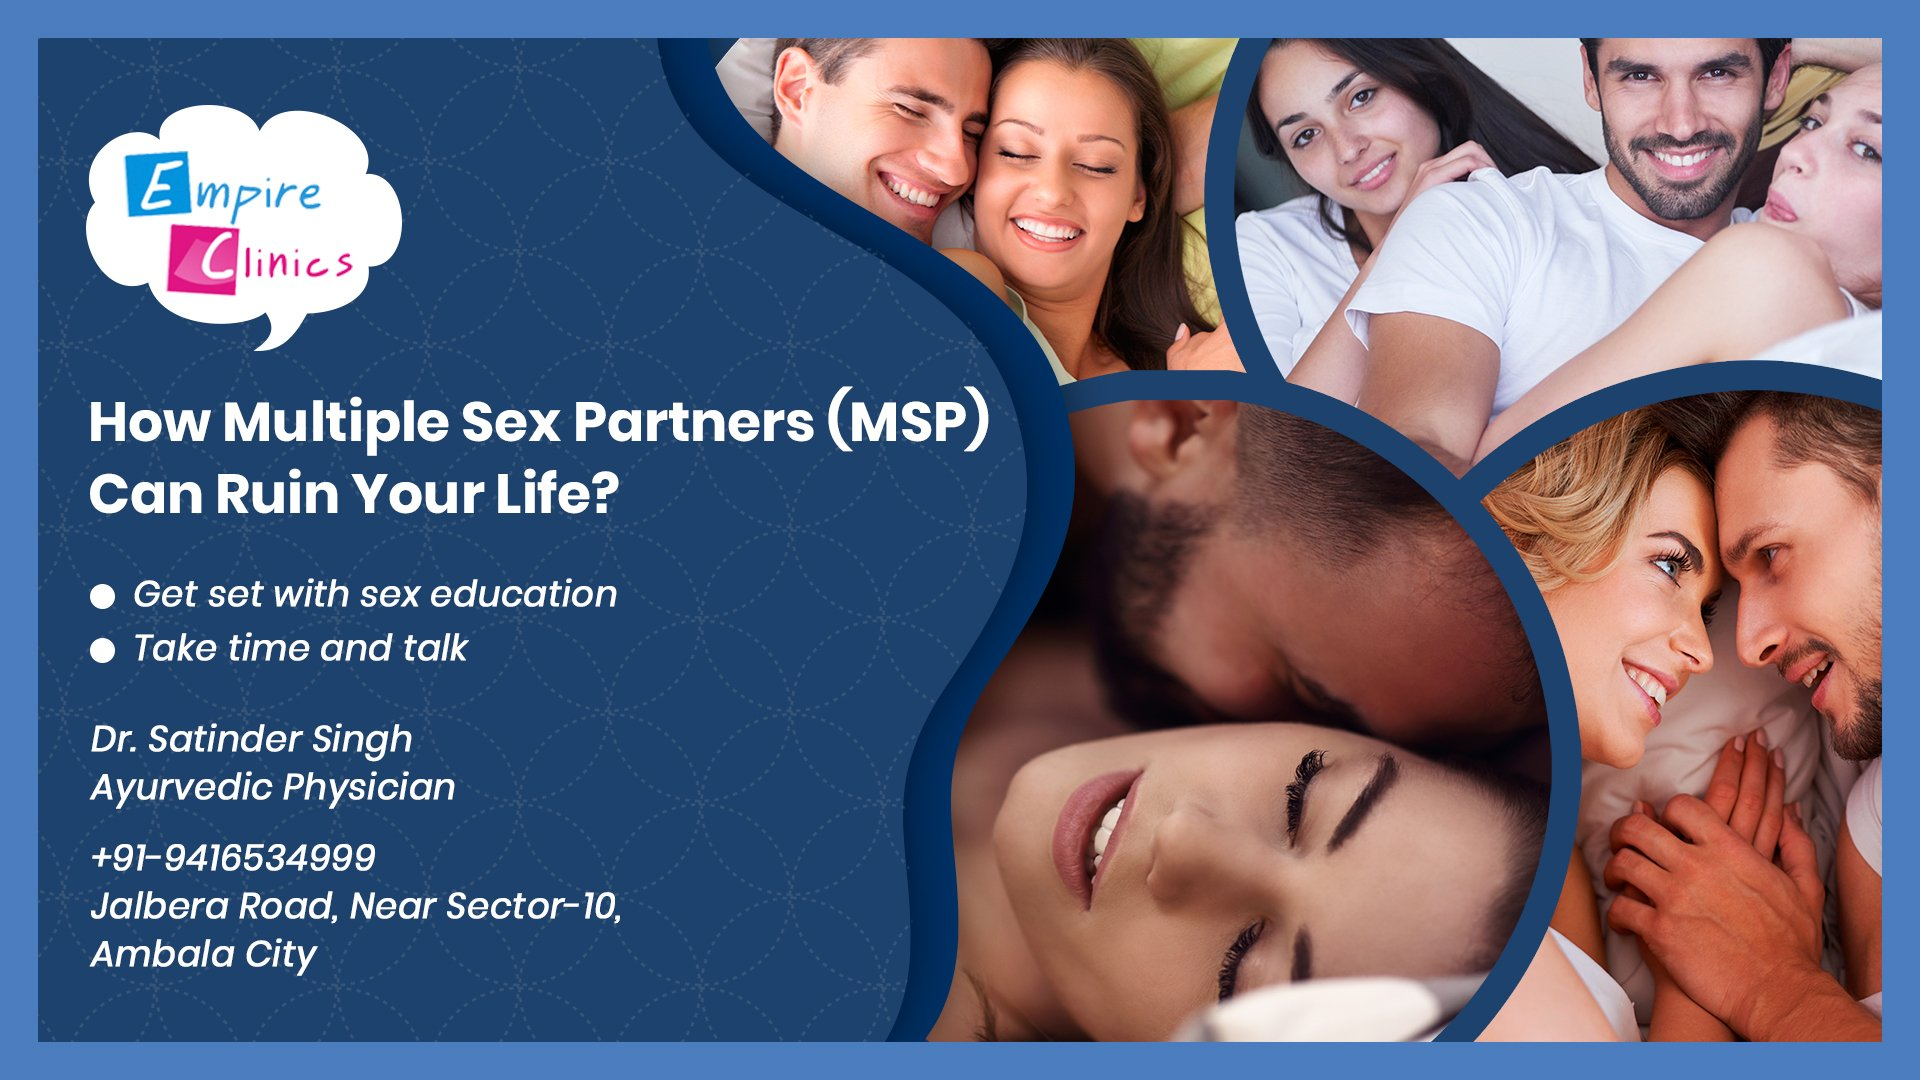 How Multiple Sex Partners (MSP) Can Ruin Your Life?